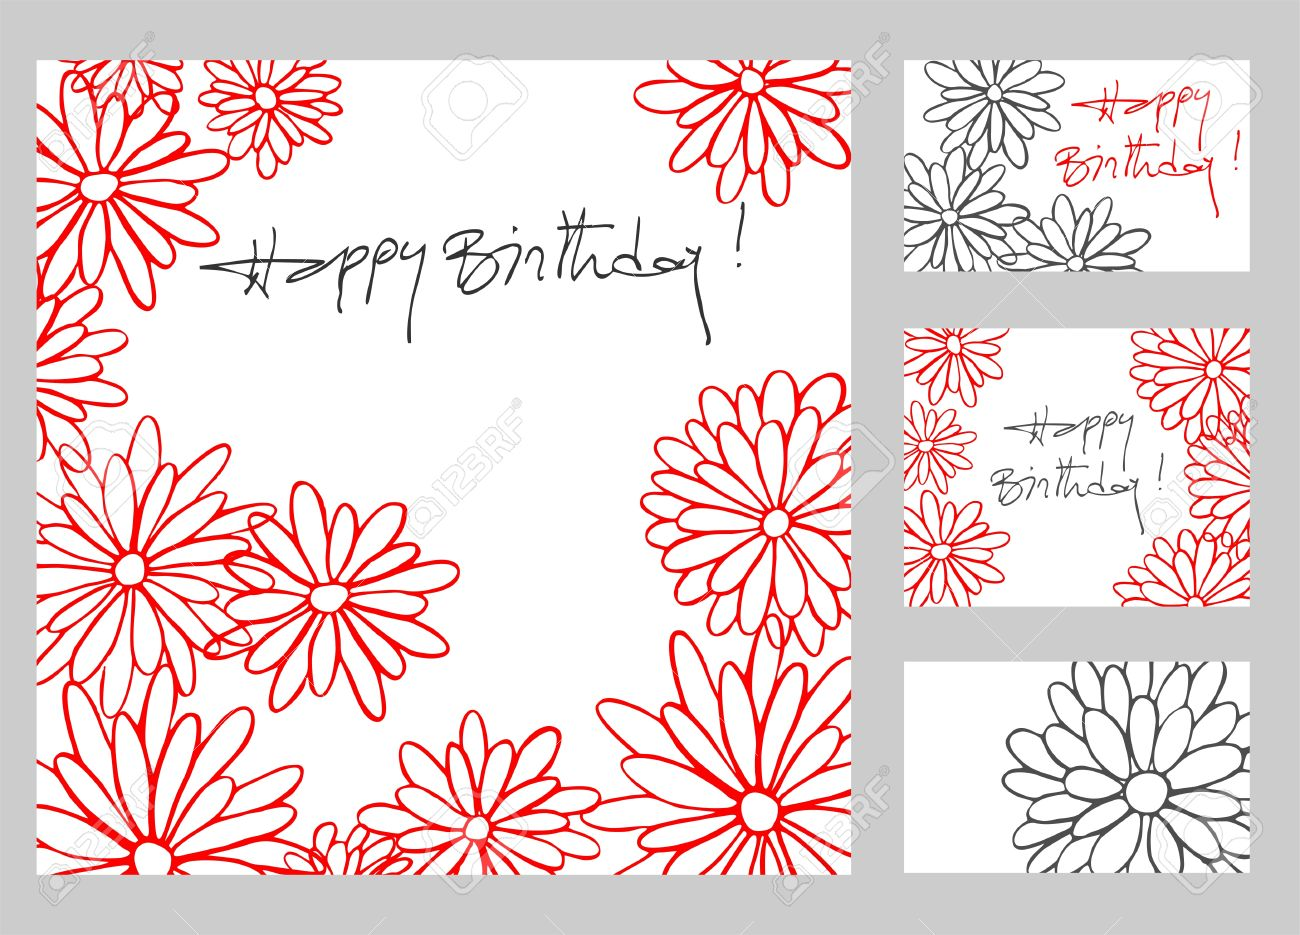 drawing of birthday greeting cards ; 18677569-Happy-birthday-greetings-cards-set-with-hand-drawn-flowers-Stock-Vector